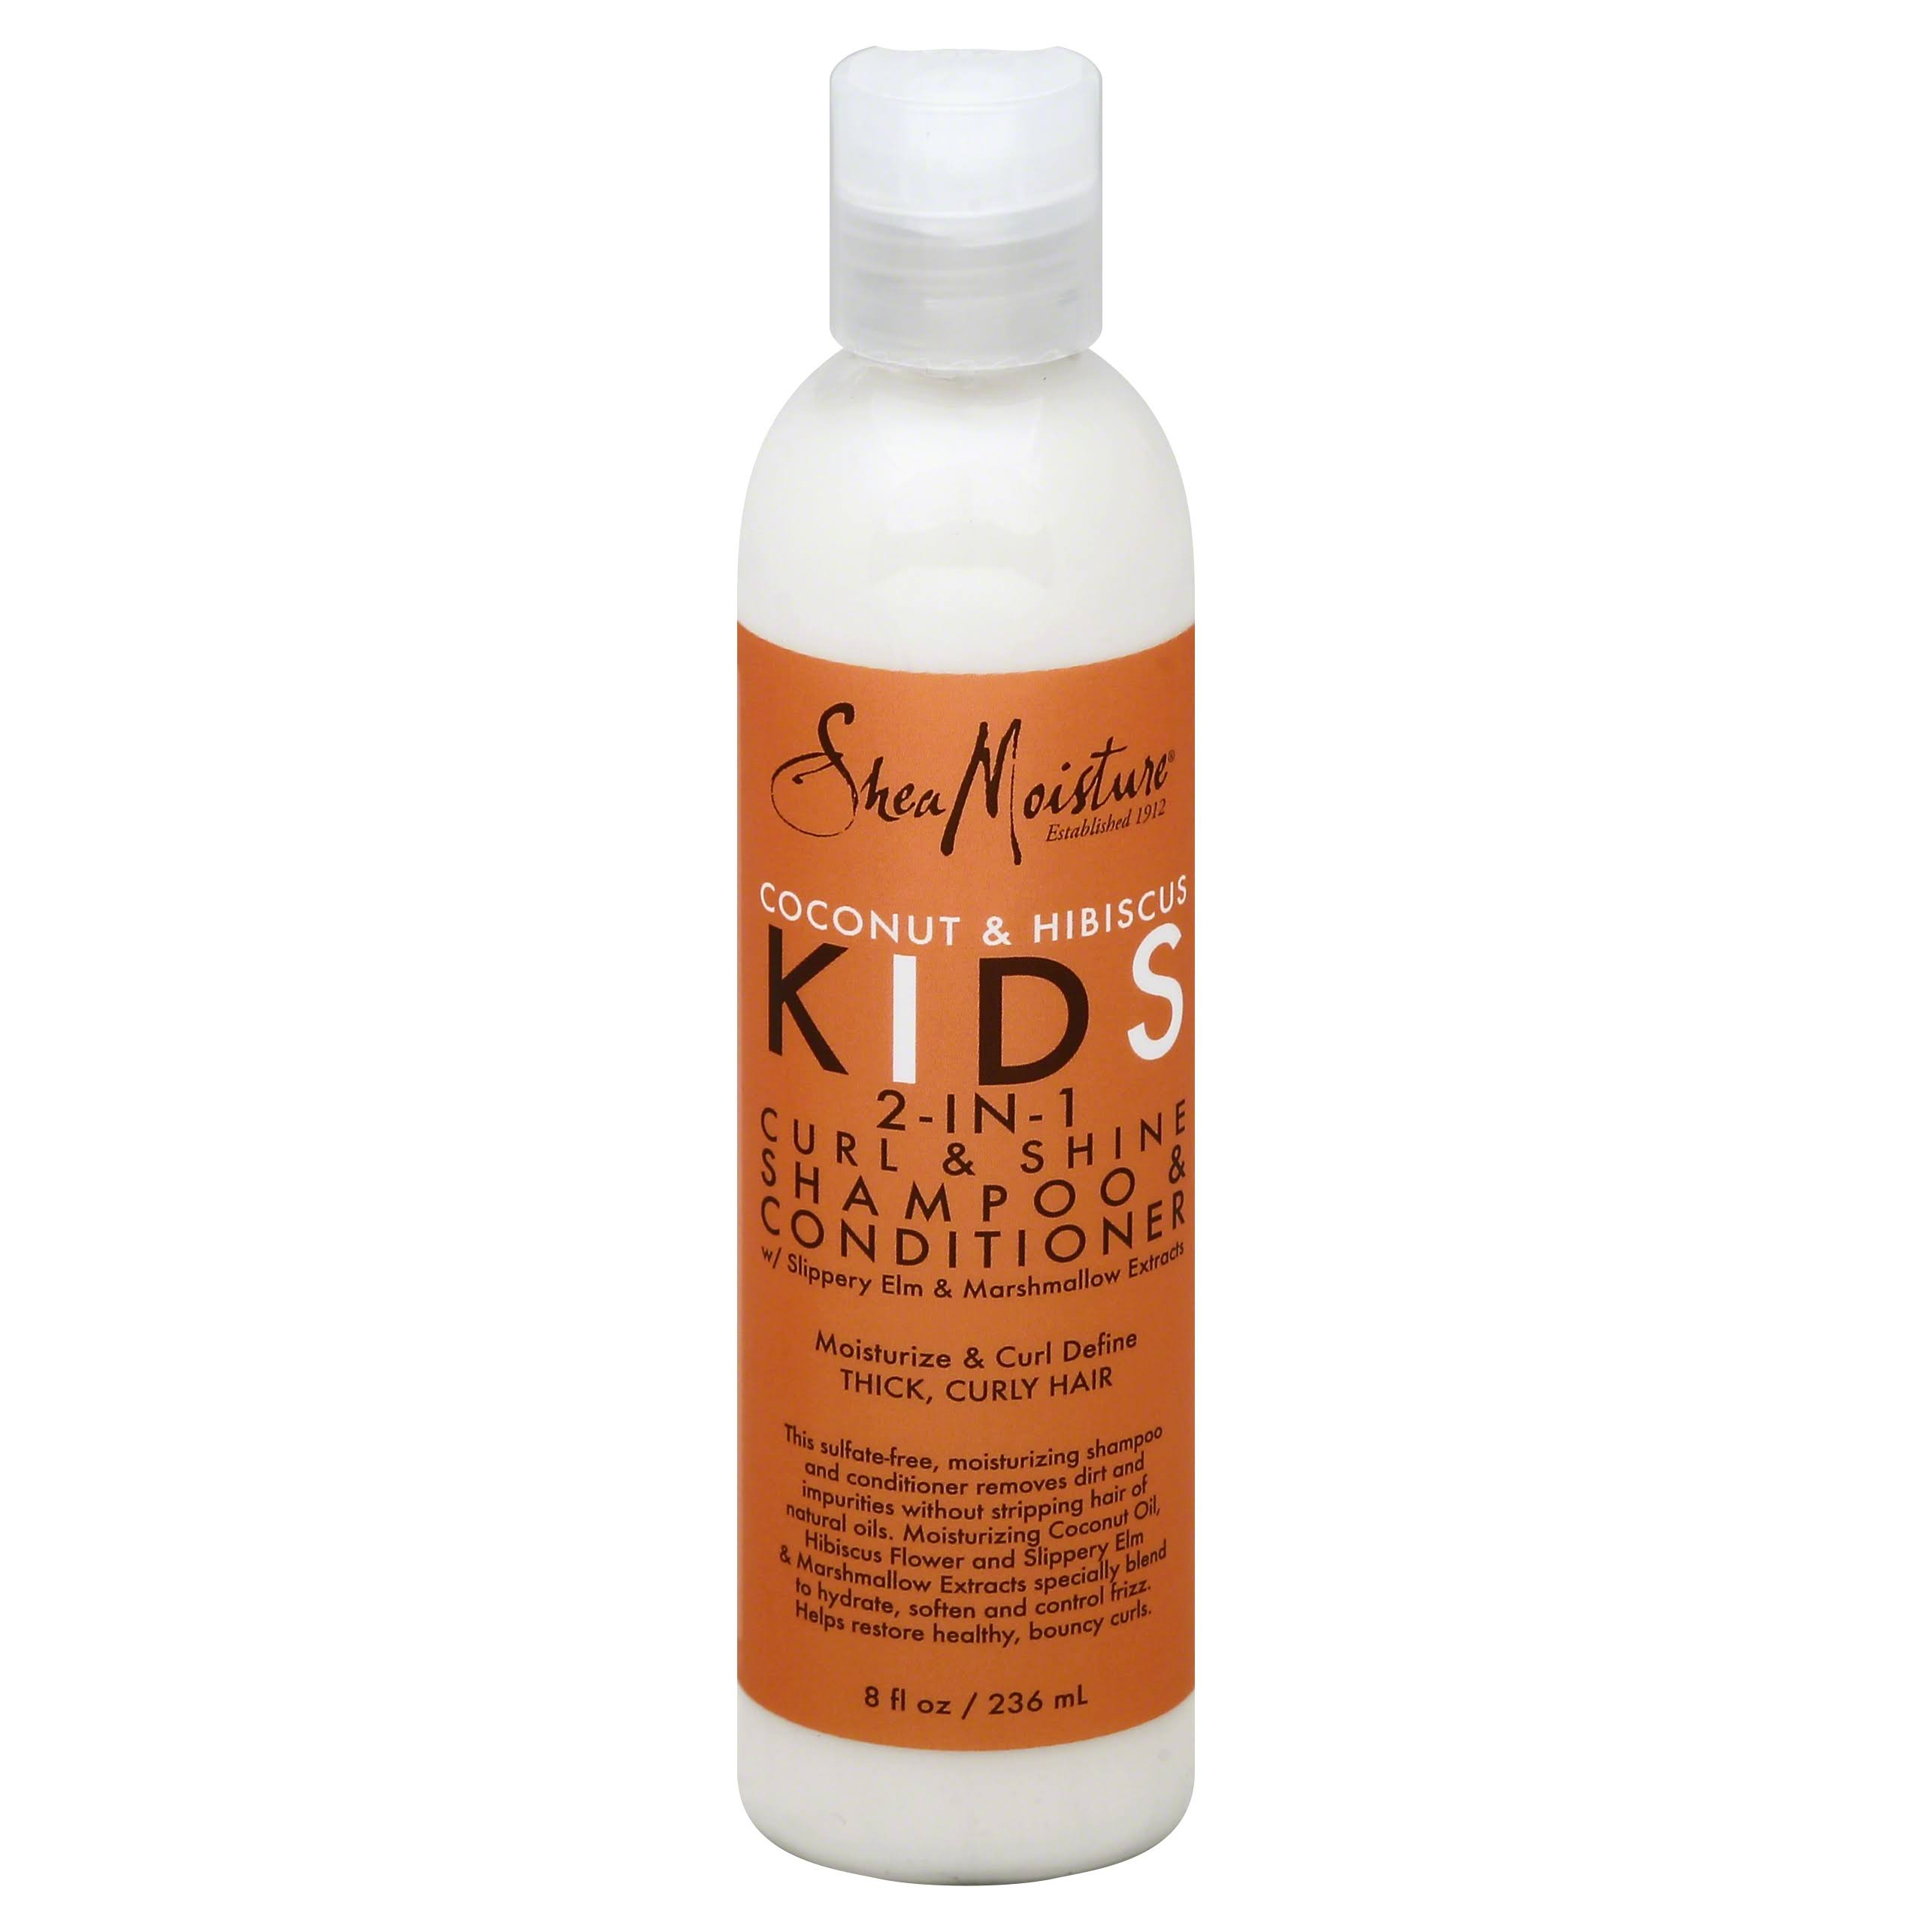 Shea Moisture Kids Curl and Shine 2-in-1 Shampoo and Conditioner - 8oz